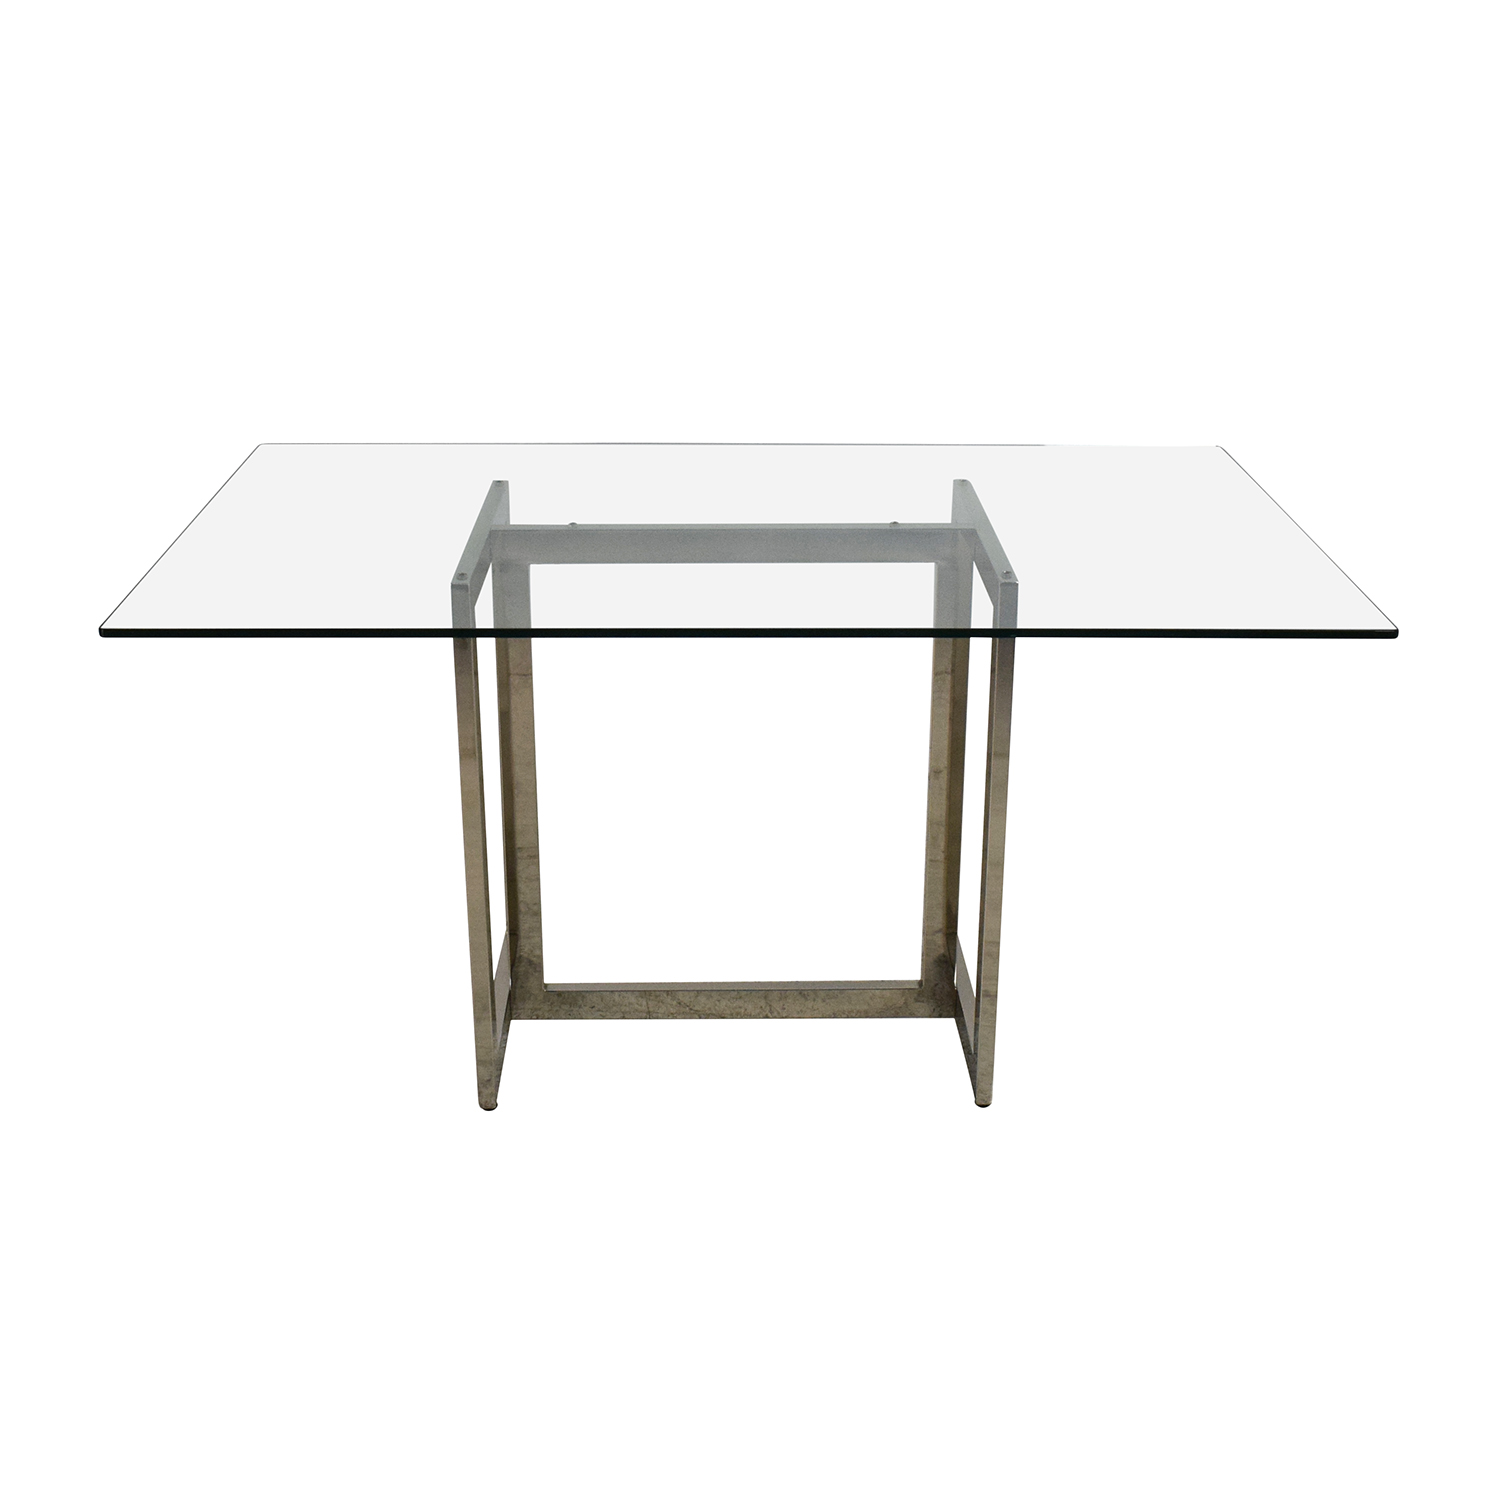 OFF West Elm West Elm Hicks Glass Top Dining Table Tables - West elm square dining table